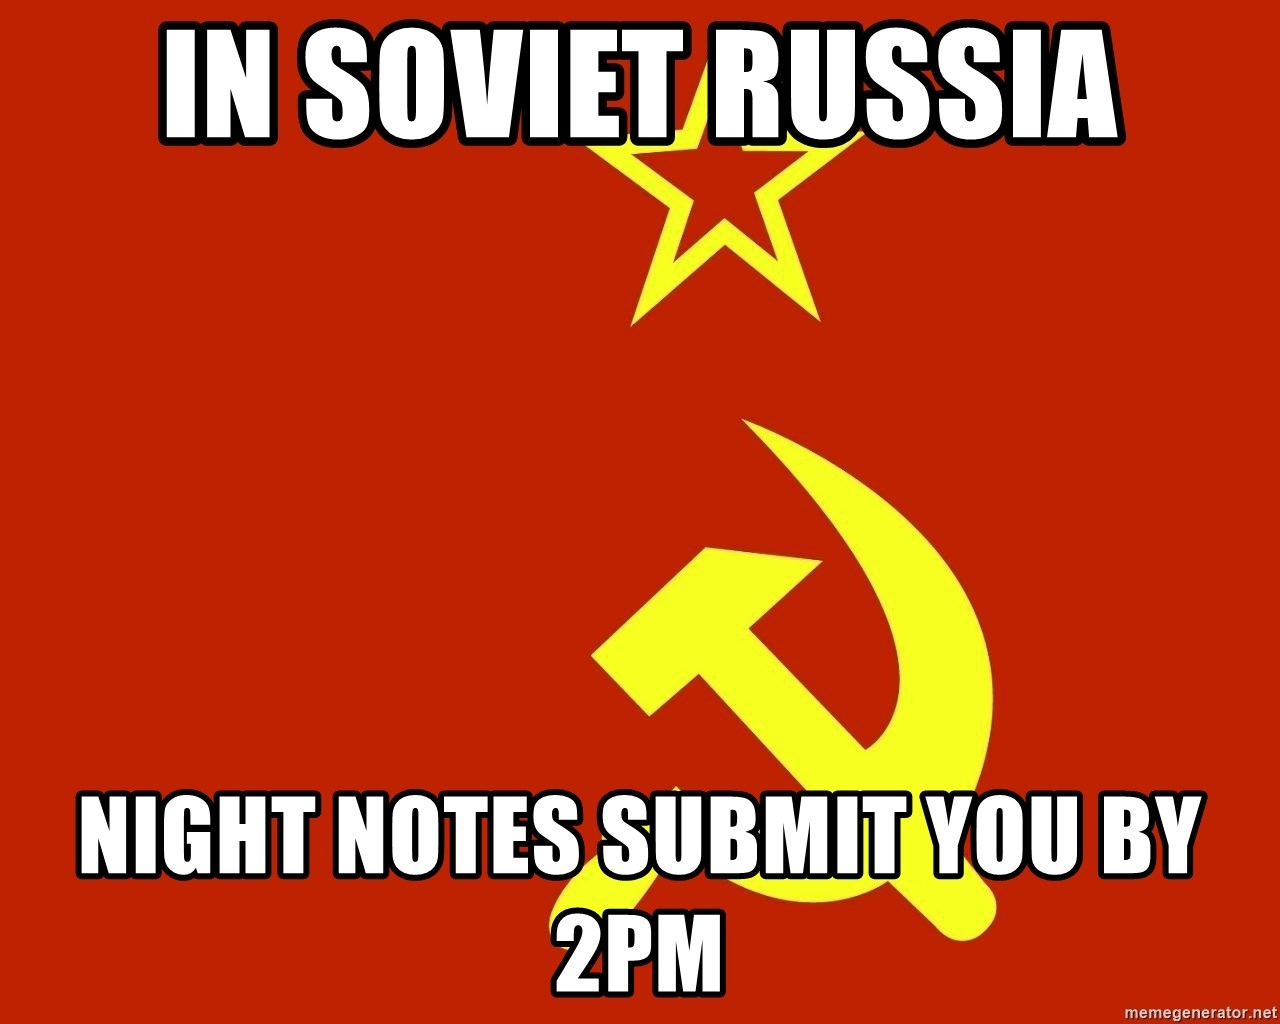 In Soviet Russia - IN soviet russia night notes submit you by 2pm